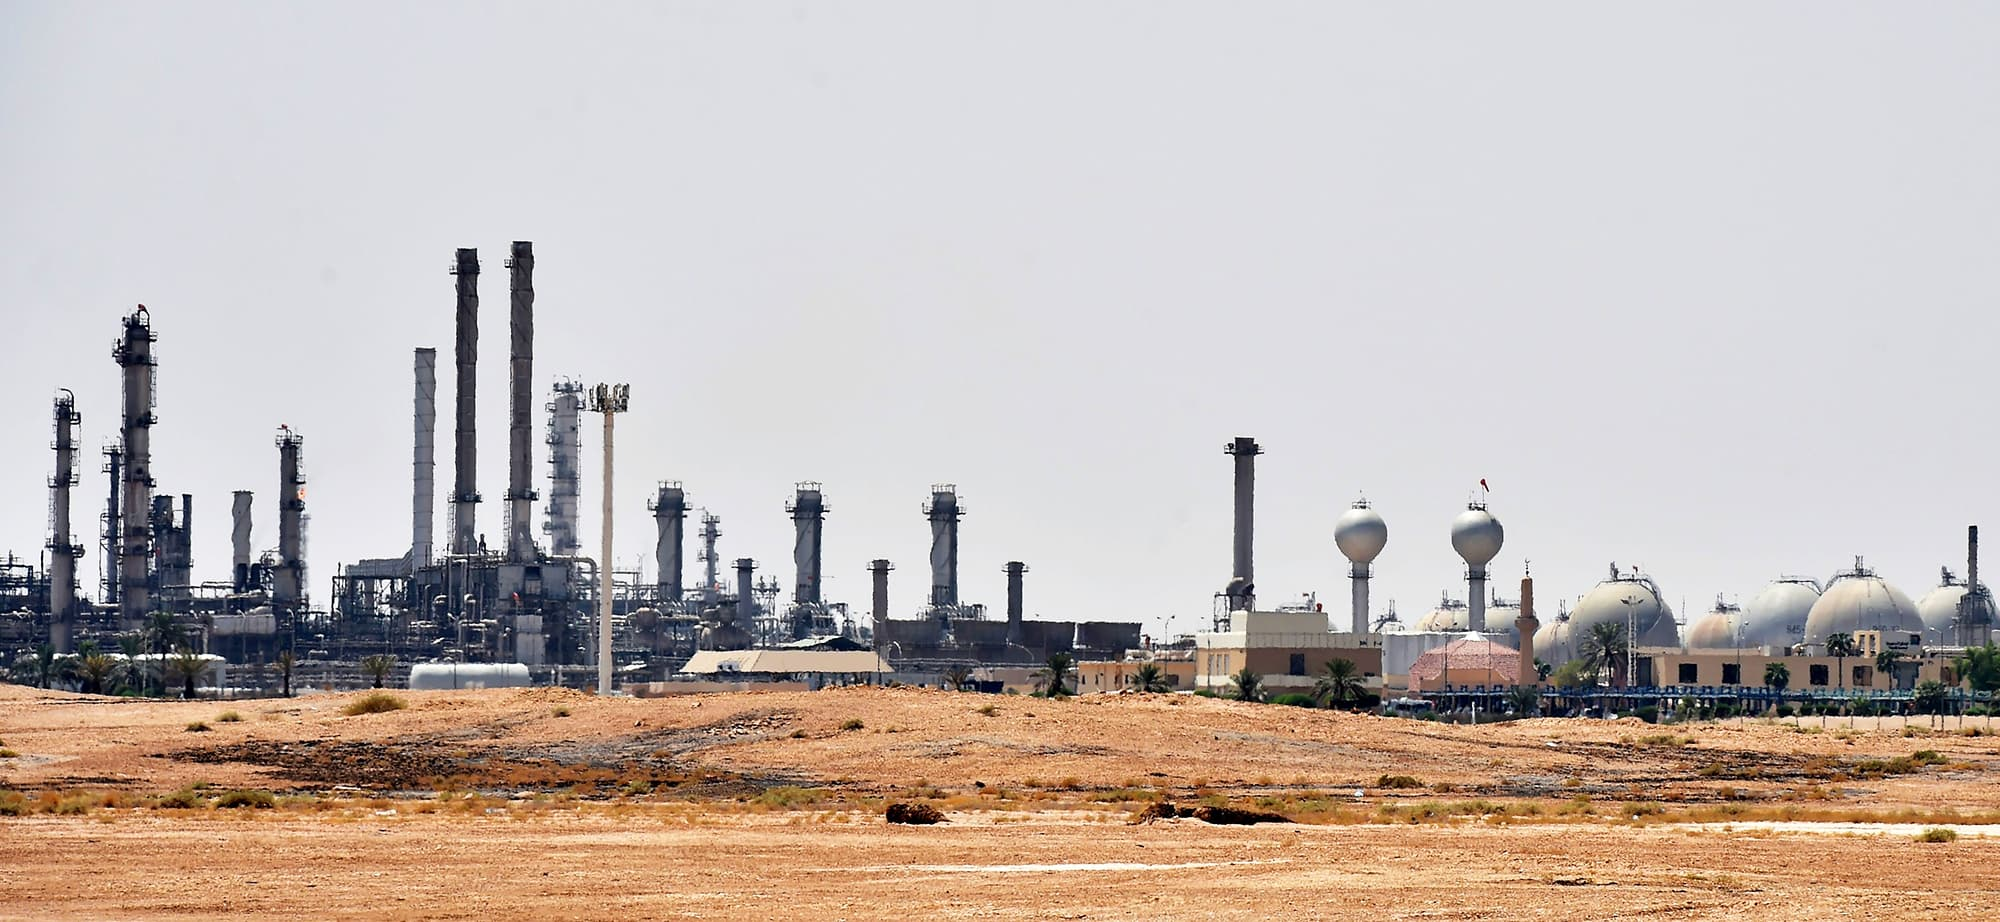 A picture taken on September 15, 2019 shows an Aramco oil facility near al-Khurj area, just outside the Saudi capital Riyadh. - Saudi Arabia raced today to restart operations at oil plants hit by drone attacks which slashed its production by half, as Iran dismissed US claims it was behind the assault. The Tehran-backed Huthi rebels in neighbouring Yemen, where a Saudi-led coalition is bogged down in a five-year war, have claimed thi weekend's strikes on two plants owned by state giant Aramco in eastern Saudi Arabia